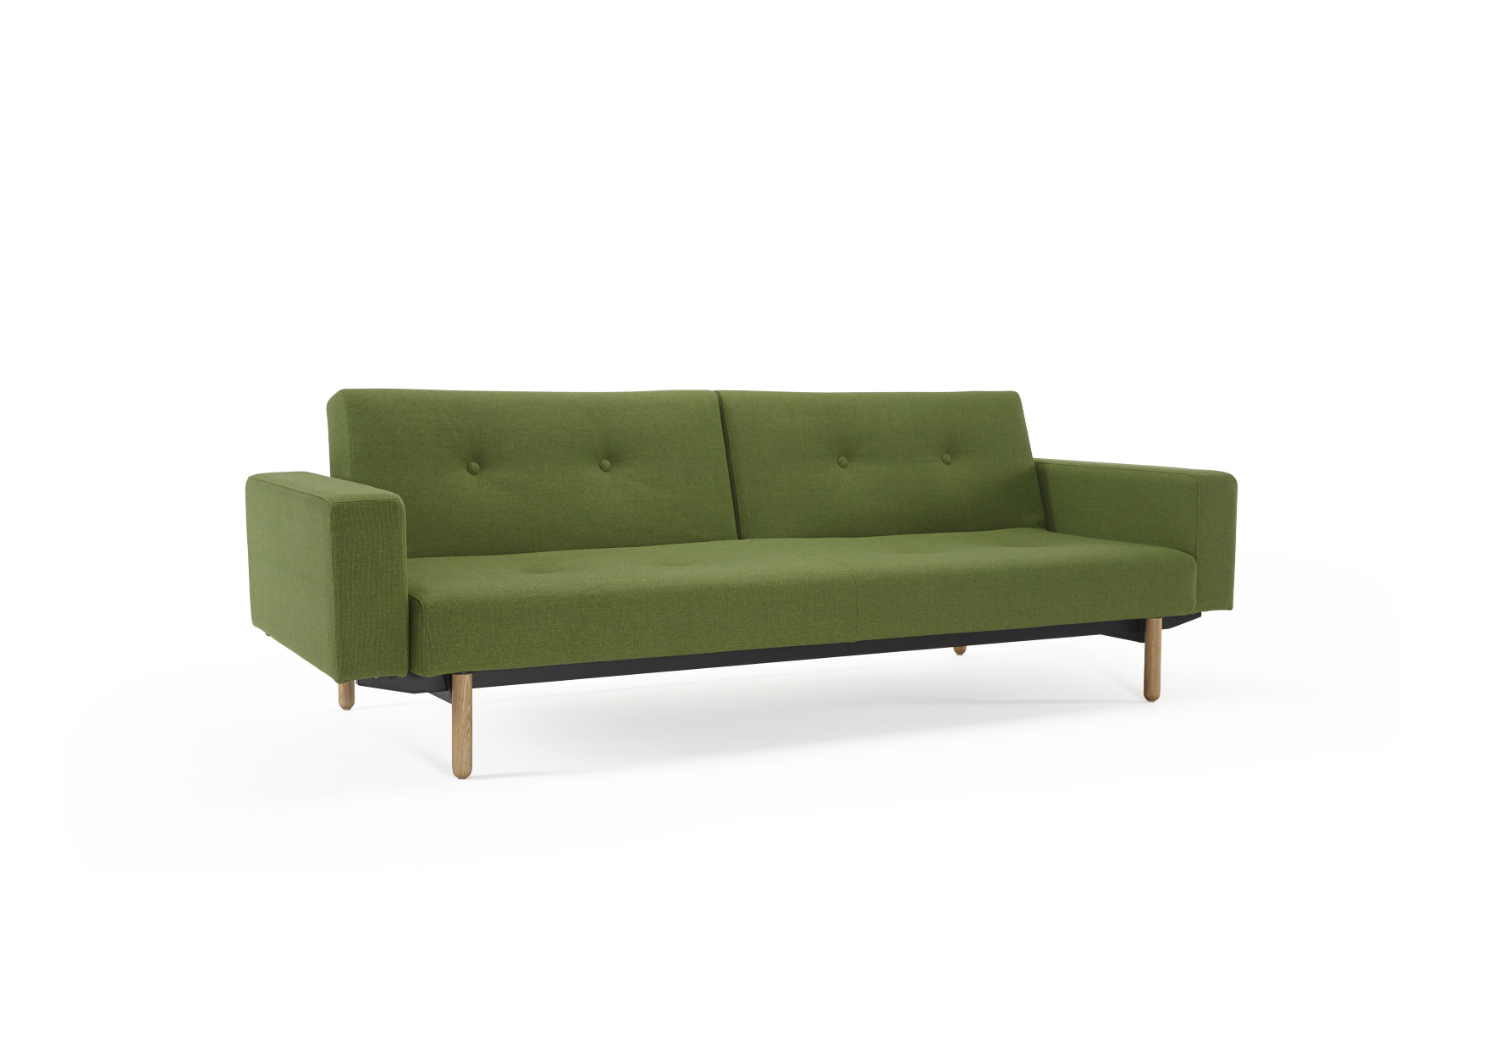 Asmund sofa stem arms 567 16 2 copy edit innovation for Sofa bed australia